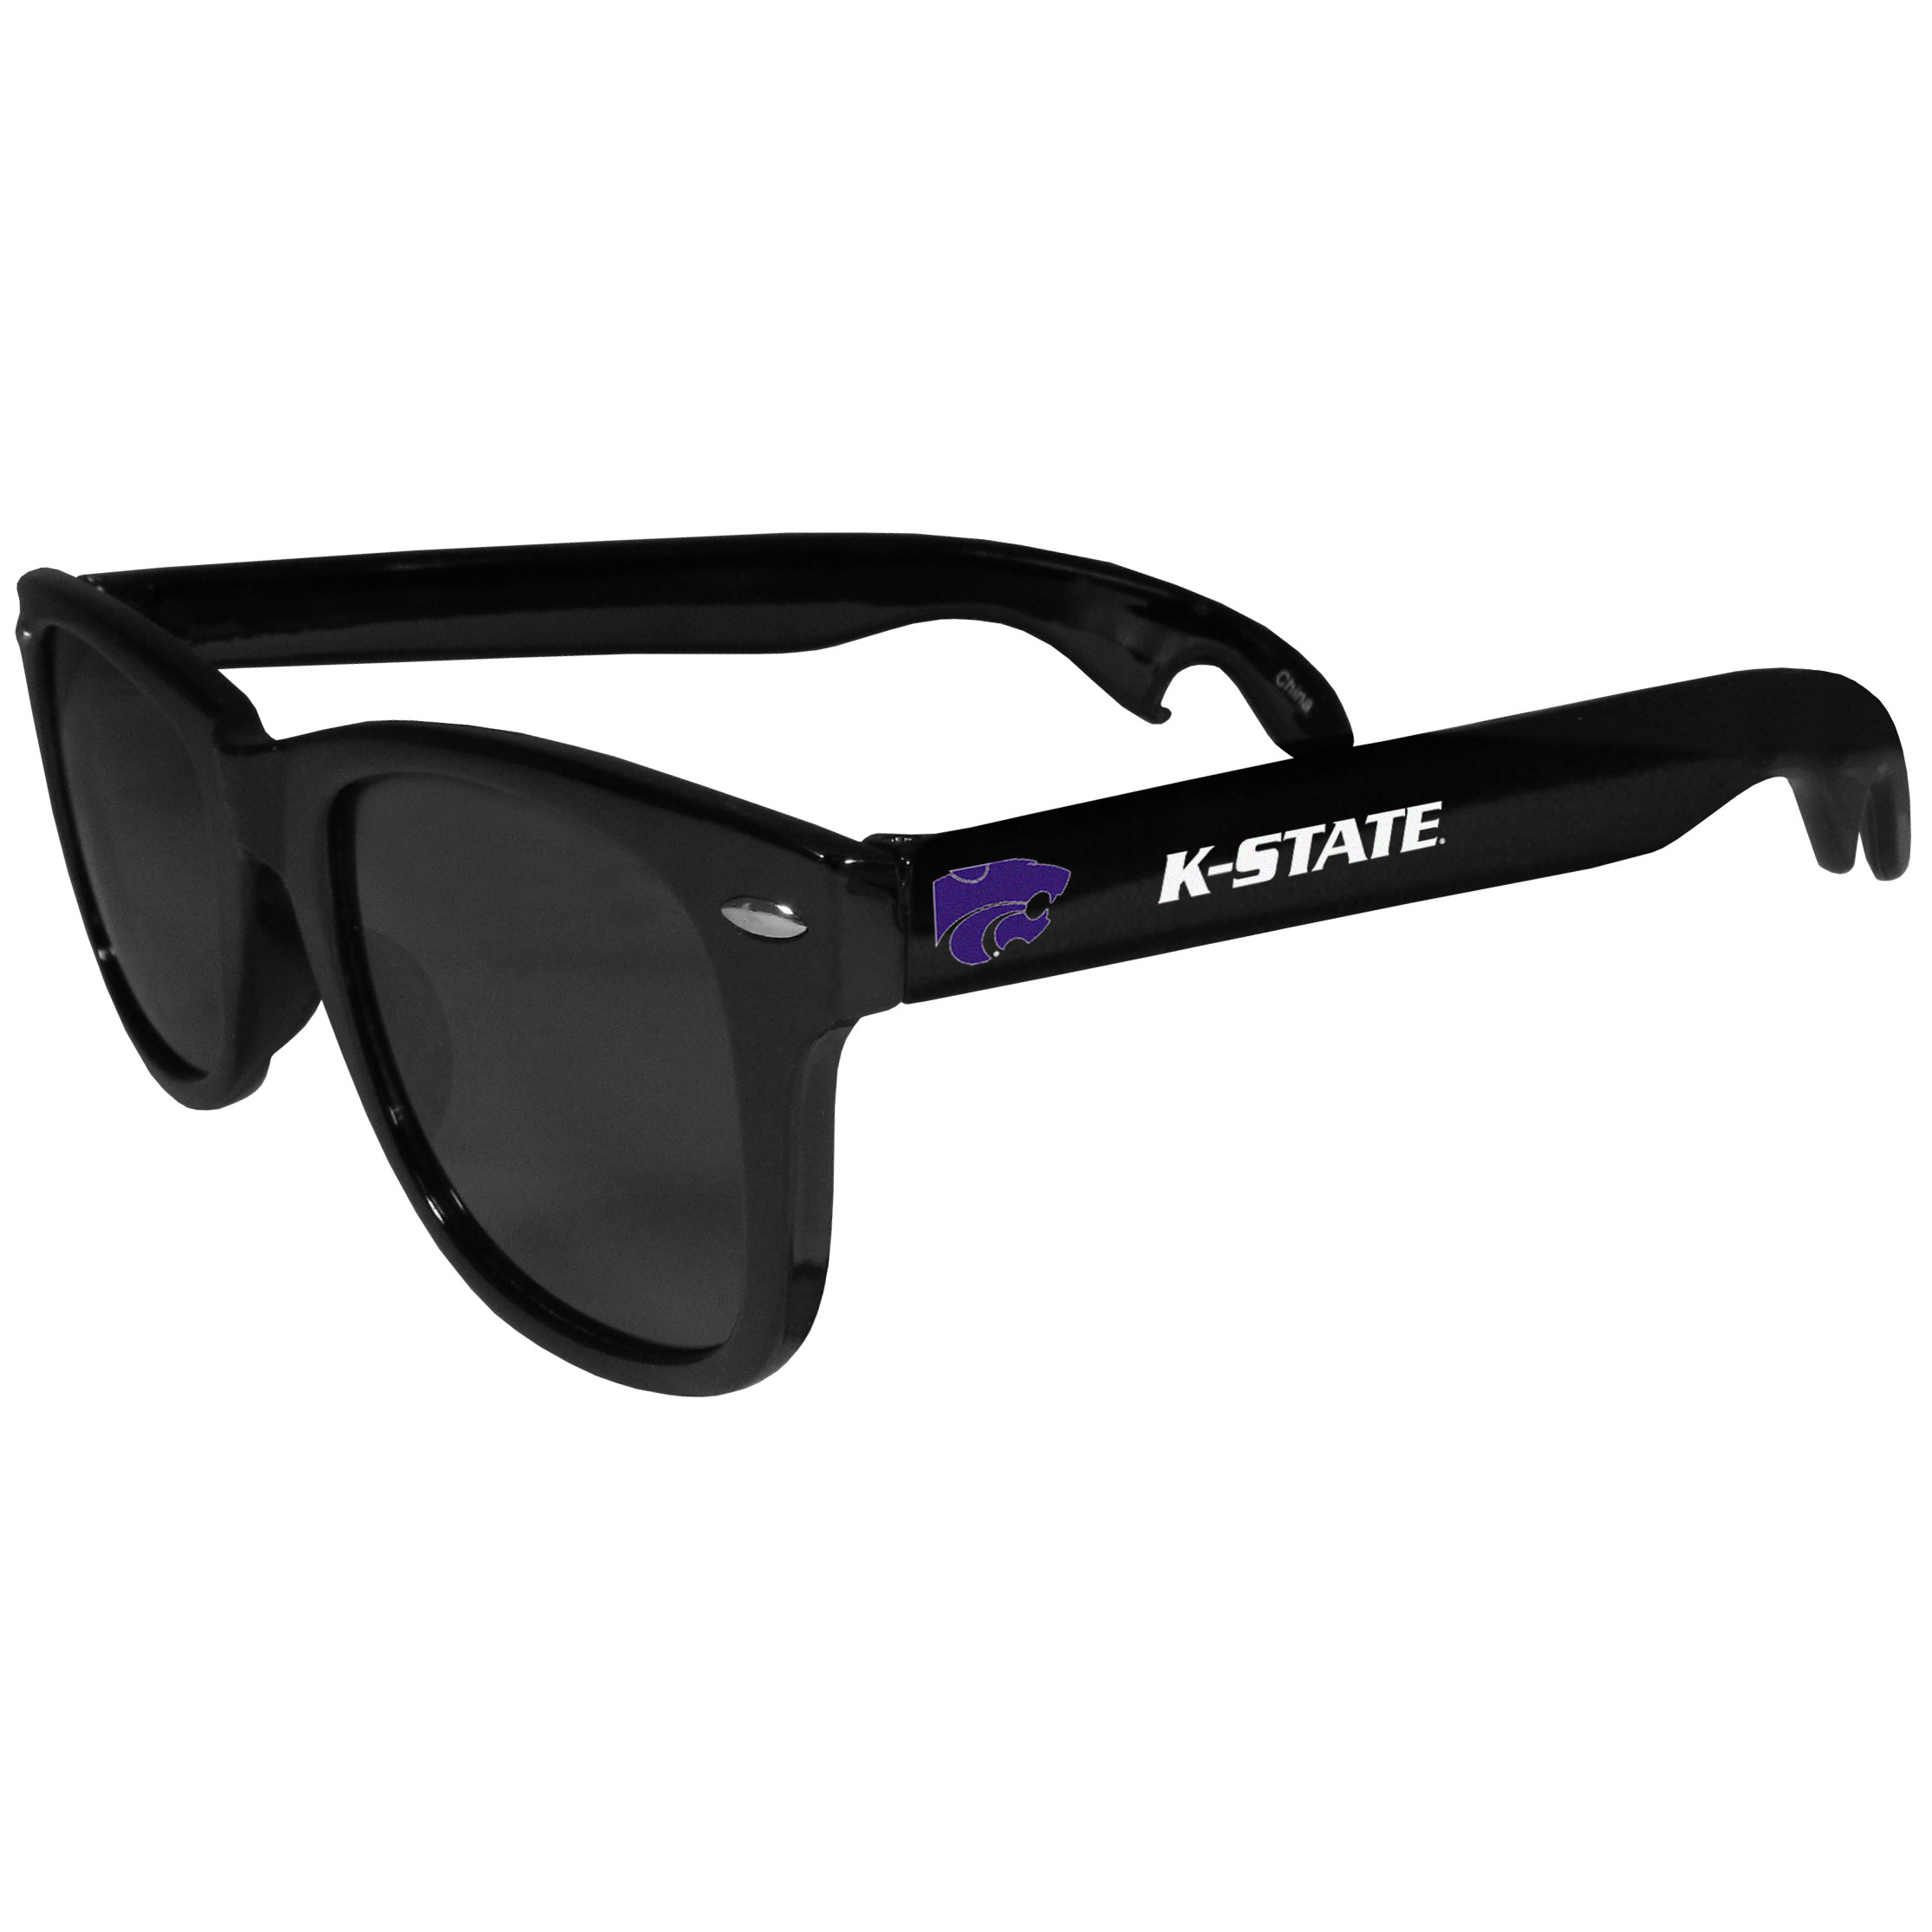 Kansas St. Wildcats Beachfarer Bottle Opener Sunglasses - Seriously, these sunglasses open bottles! Keep the party going with these amazing Kansas St. Wildcats bottle opener sunglasses. The stylish retro frames feature team designs on the arms and functional bottle openers on the end of the arms. Whether you are at the beach or having a backyard BBQ on game day, these shades will keep your eyes protected with 100% UVA/UVB protection and keep you hydrated with the handy bottle opener arms.